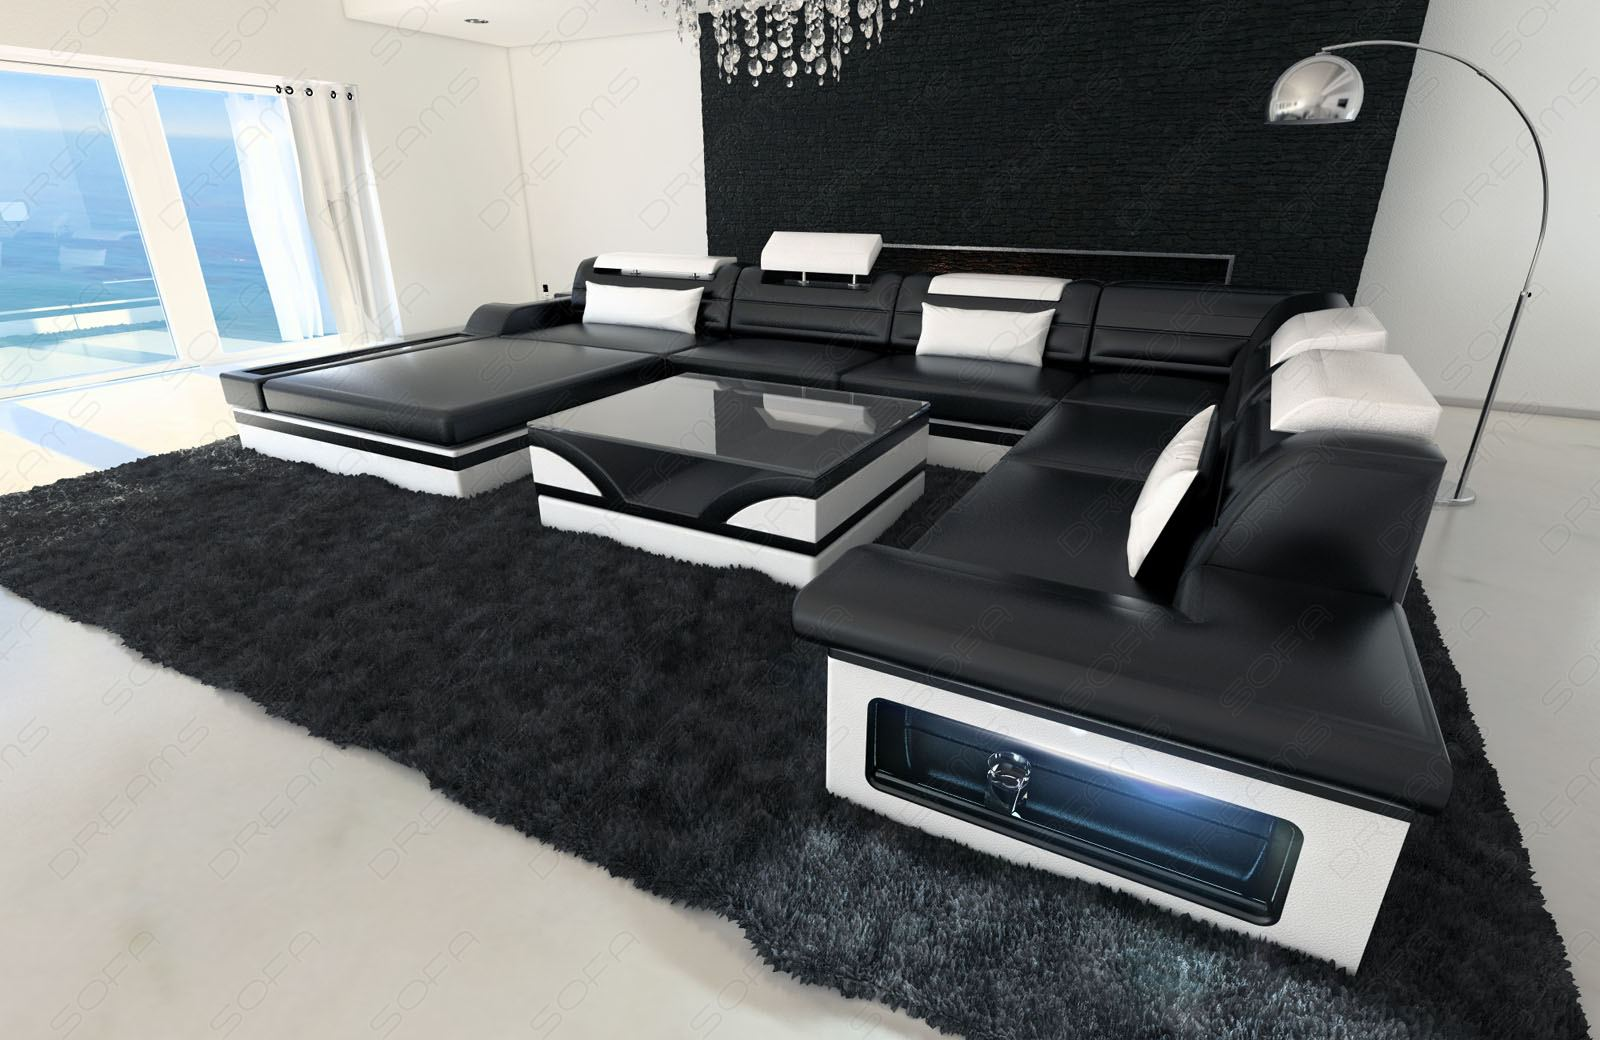 Wohnlandschaft design  Design Sectional Sofa MEZZO XXL with LED Lights black white | eBay